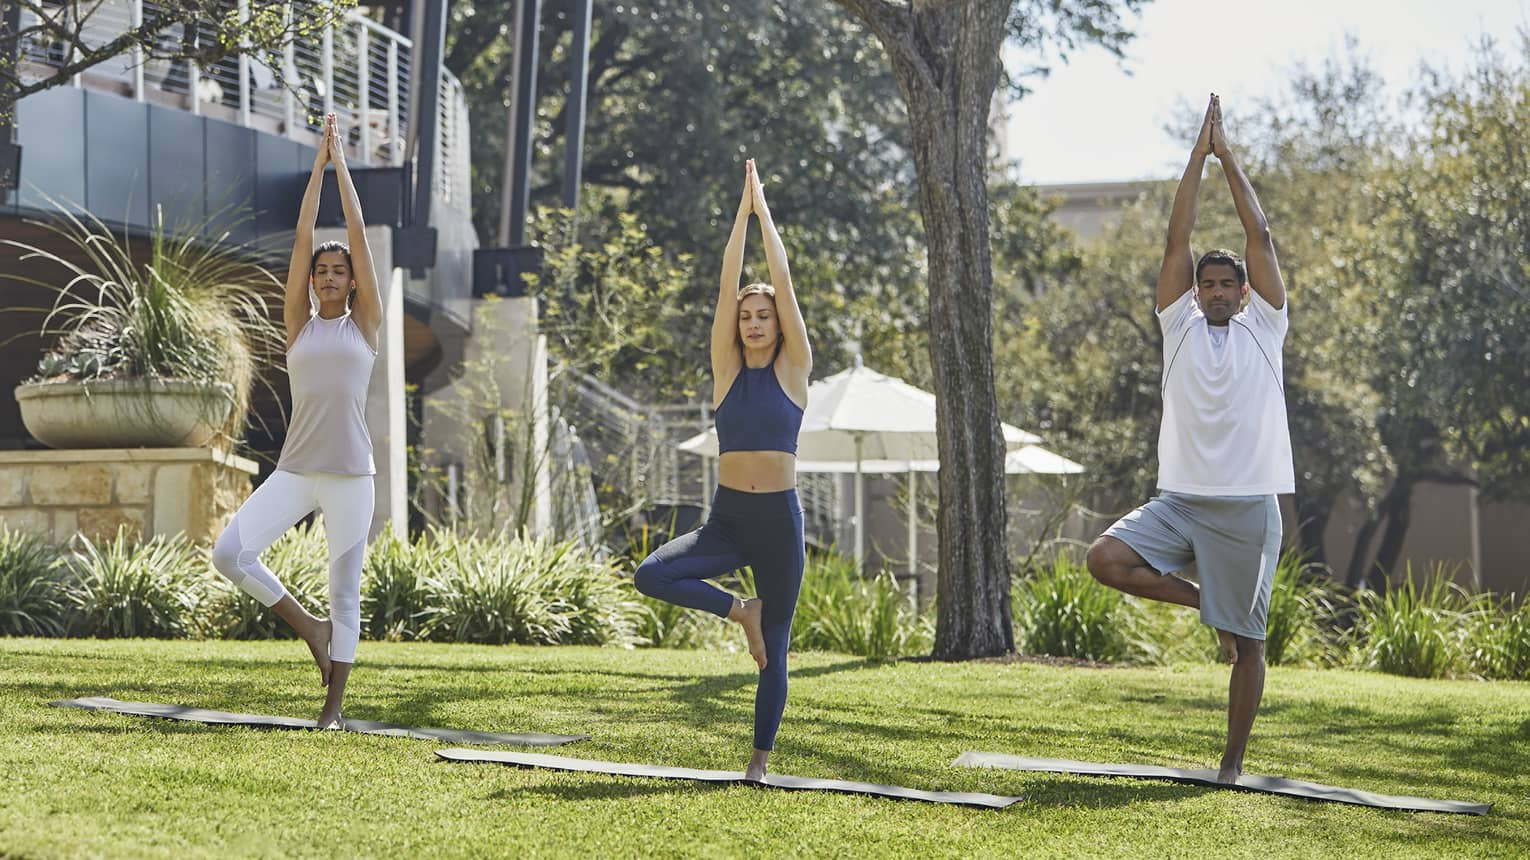 Guests balance while extending their arms to the sky during a yoga session